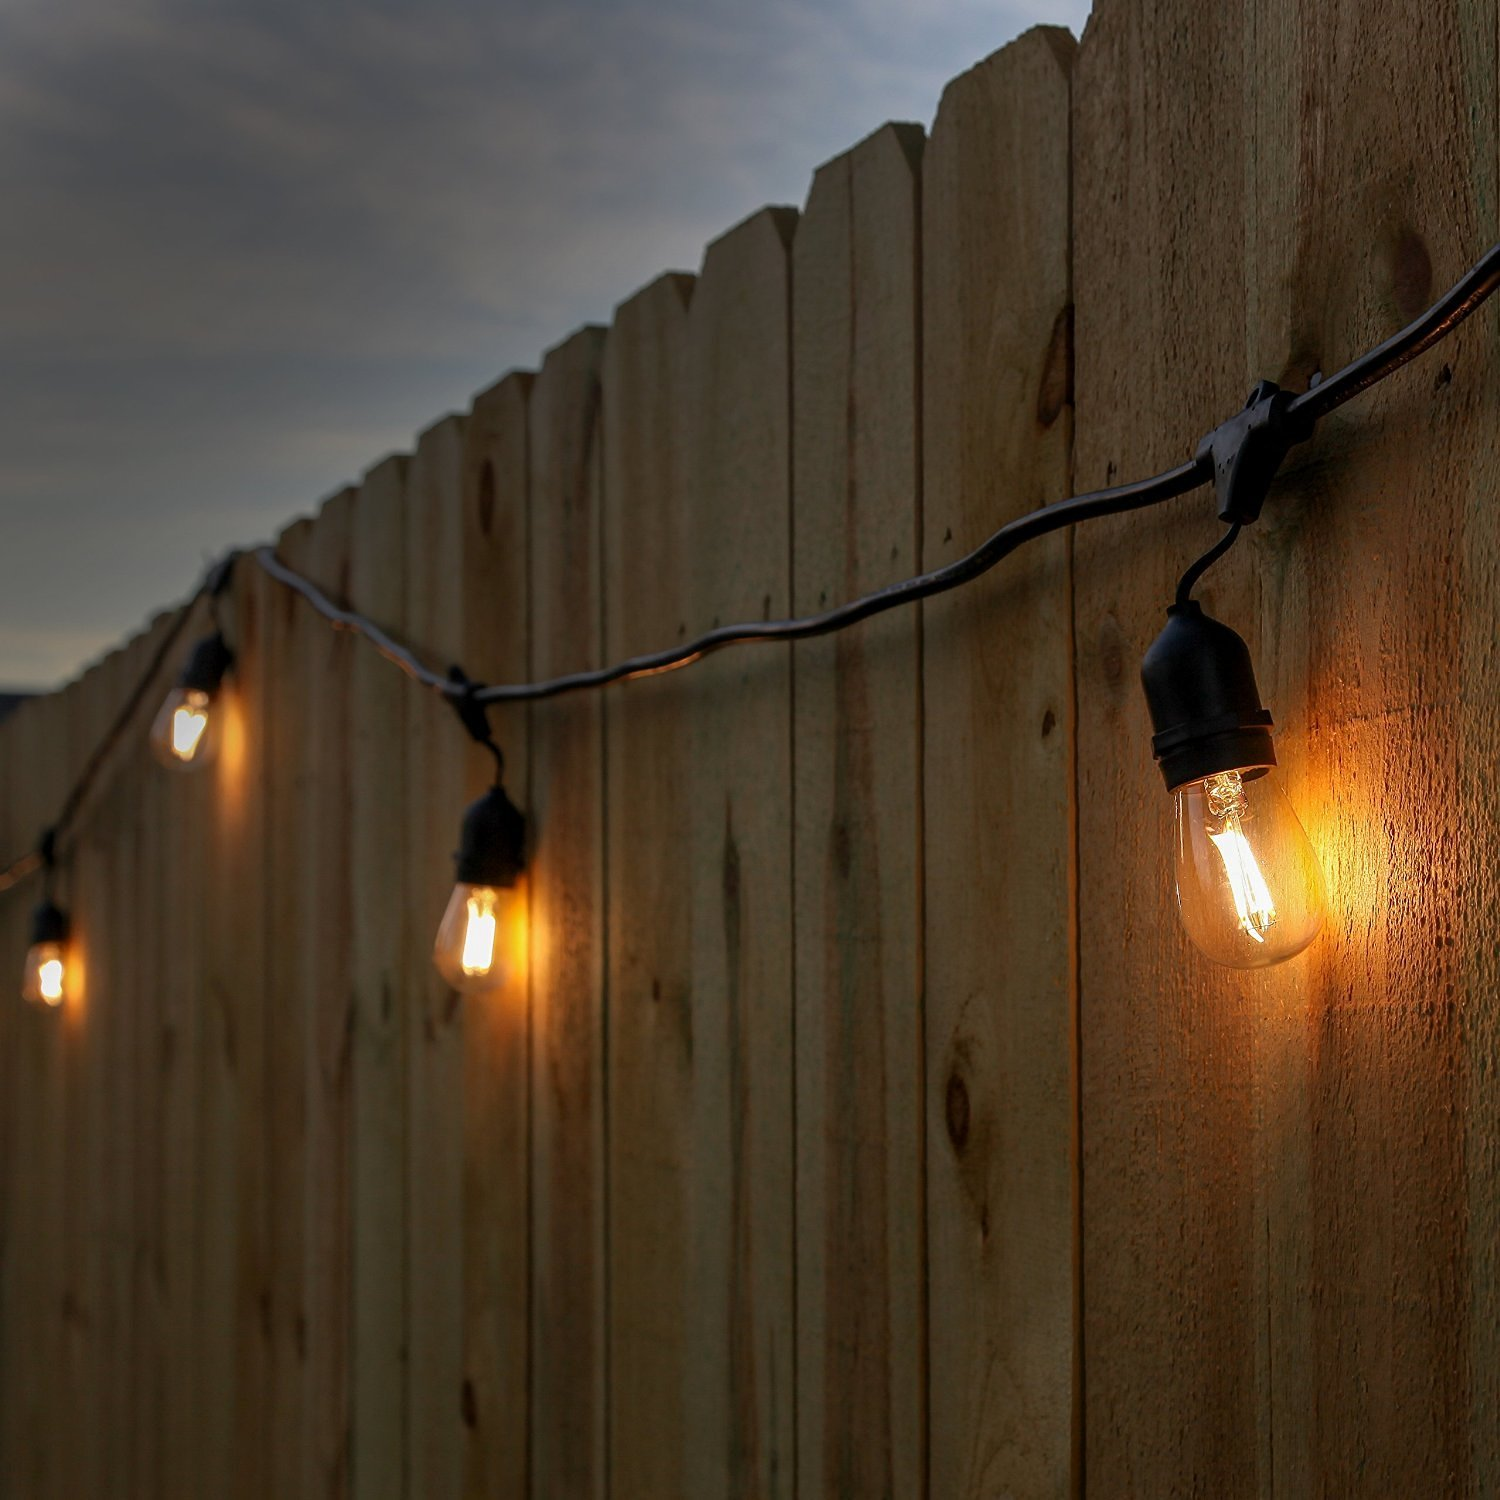 Outdoor Led Bulb String Lights : Newhouse Lighting 48-Foot Outdoor String Lights, LED Bulbs Included